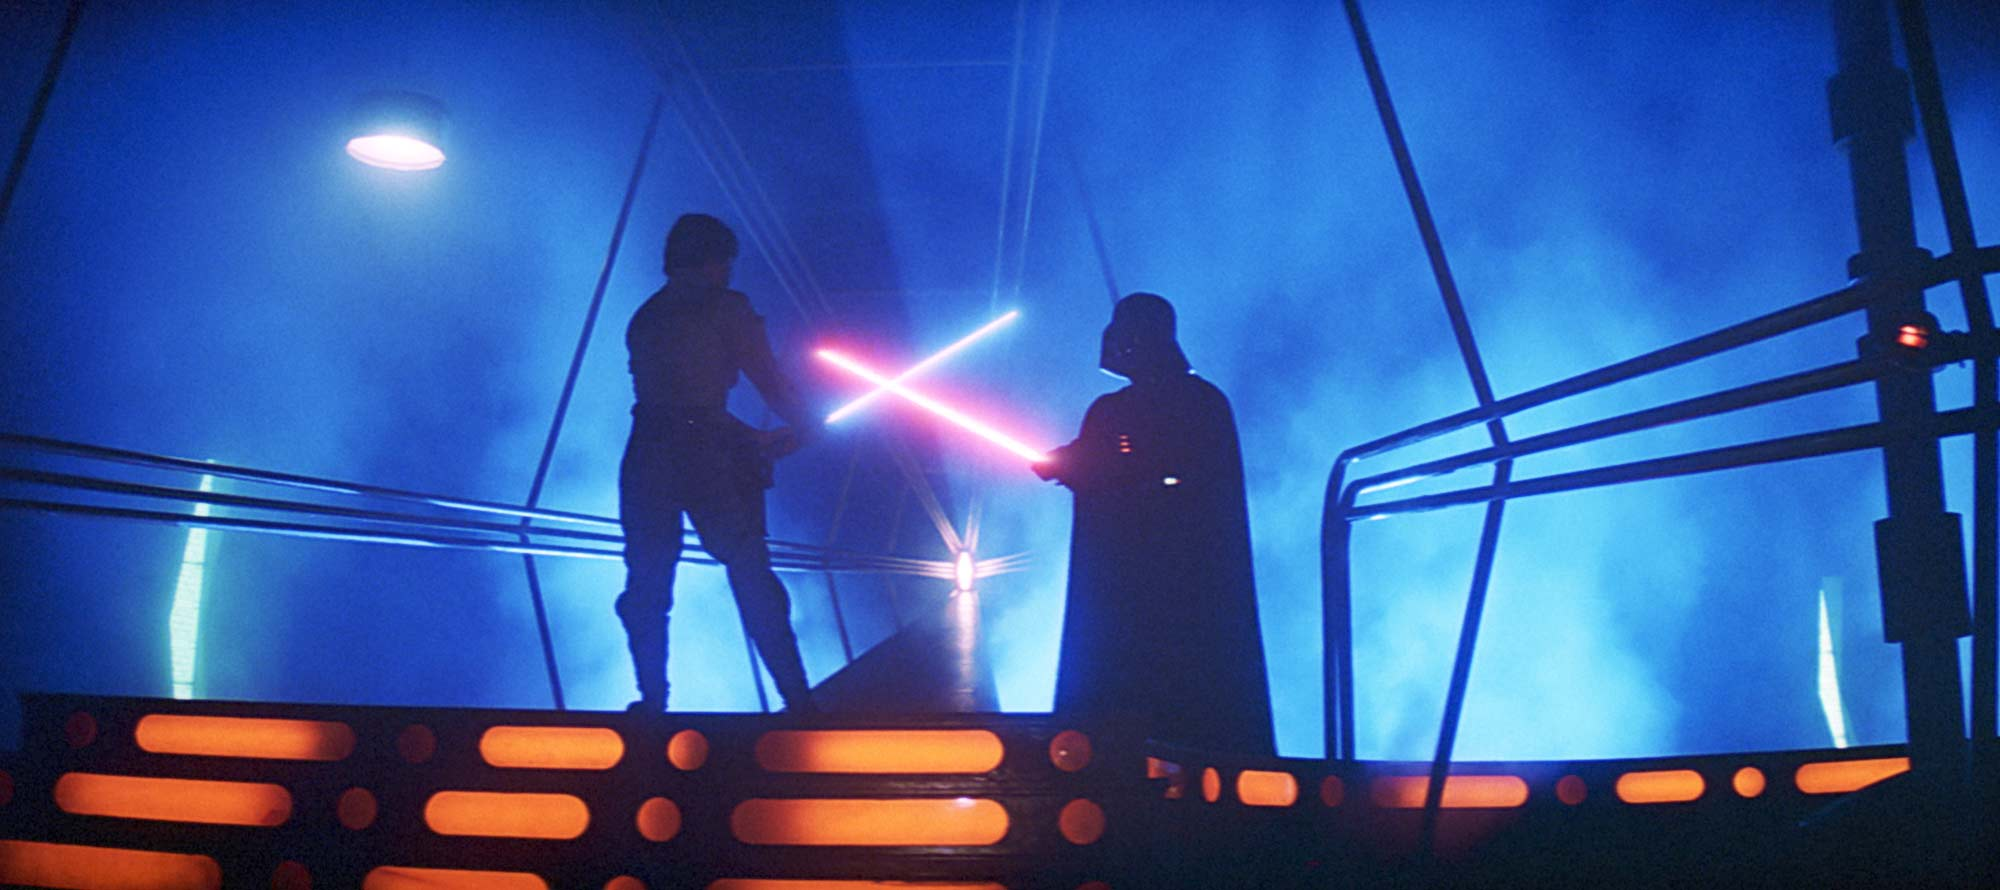 2000x890 - Empire Strikes Back 9